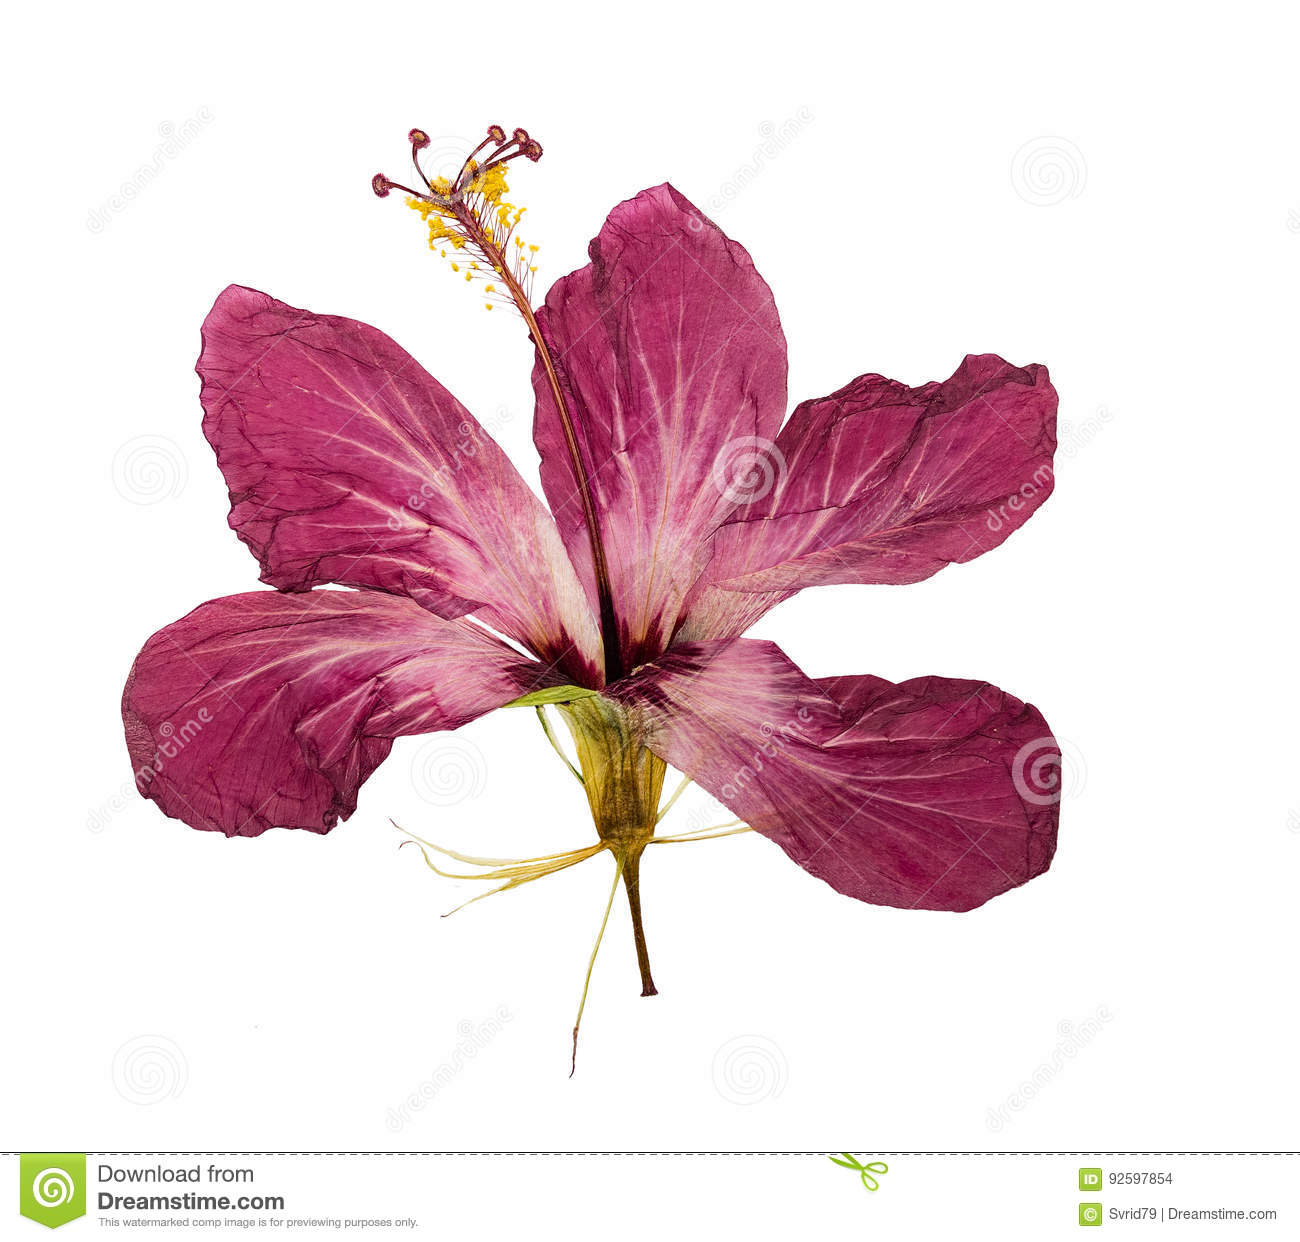 Pressed and dried flower hibiscus isolated stock photo image of download pressed and dried flower hibiscus isolated stock photo image of flower close izmirmasajfo